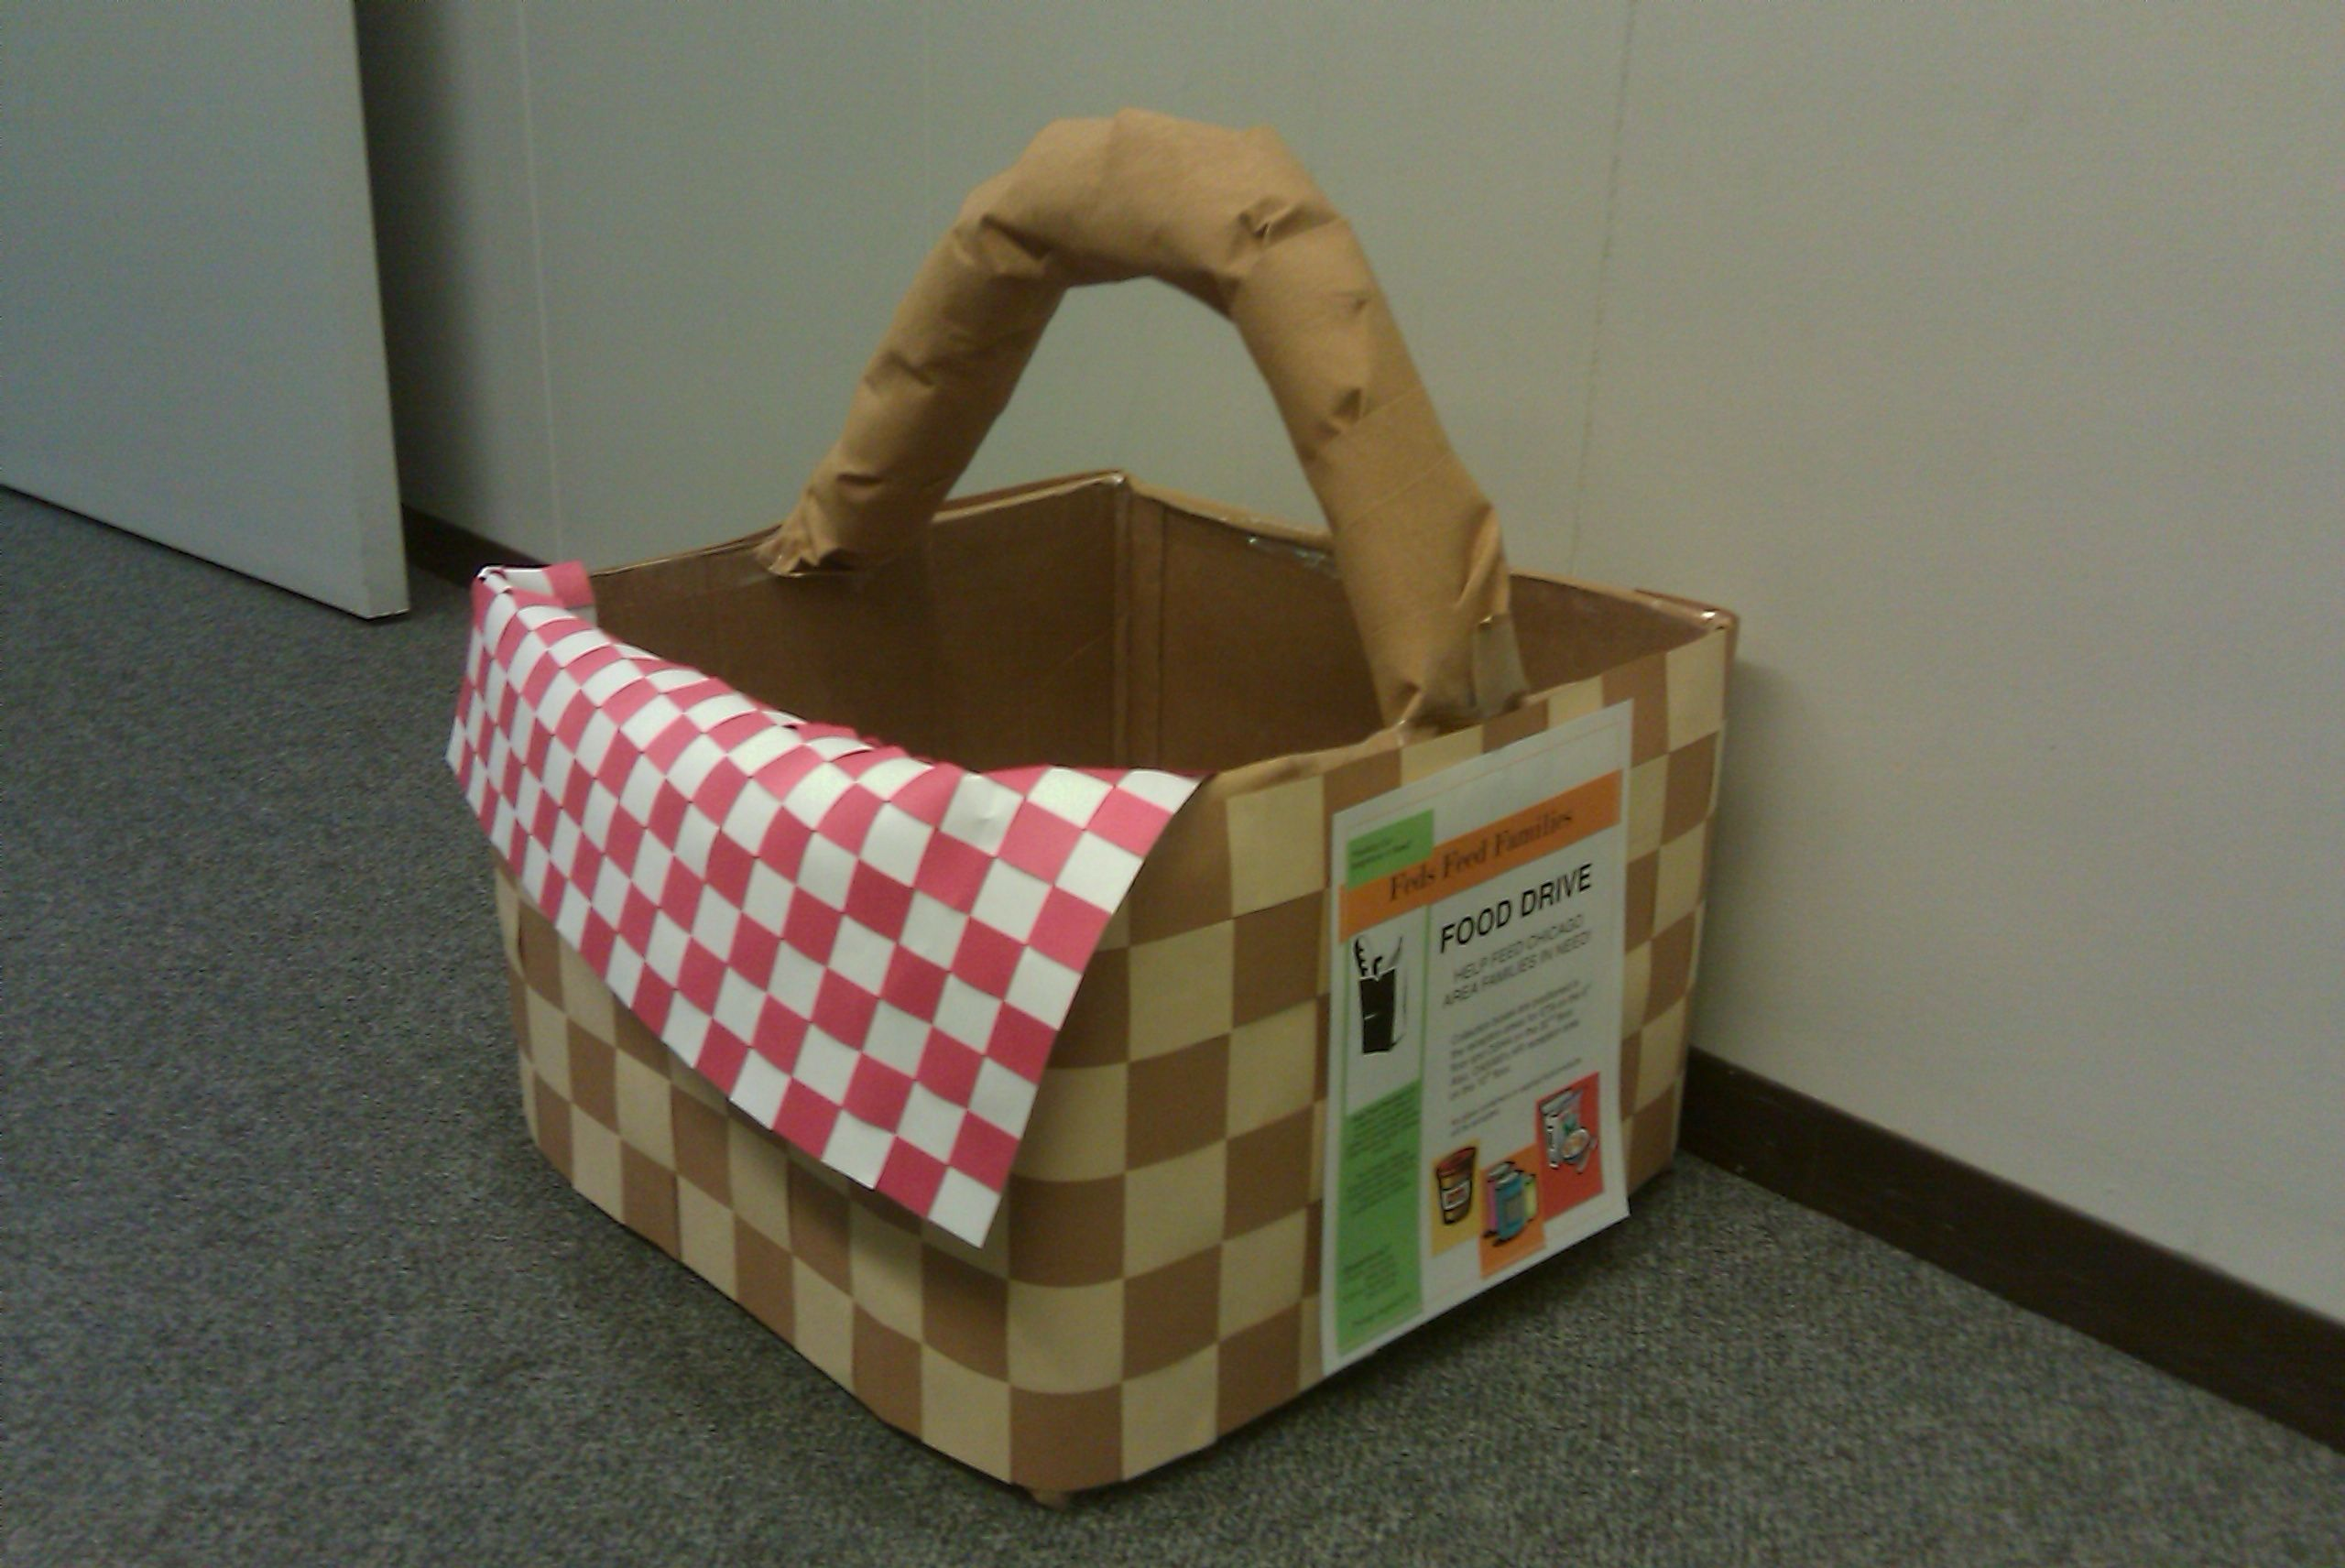 food drive box decorations - google search … | food drive boxes | pinte…